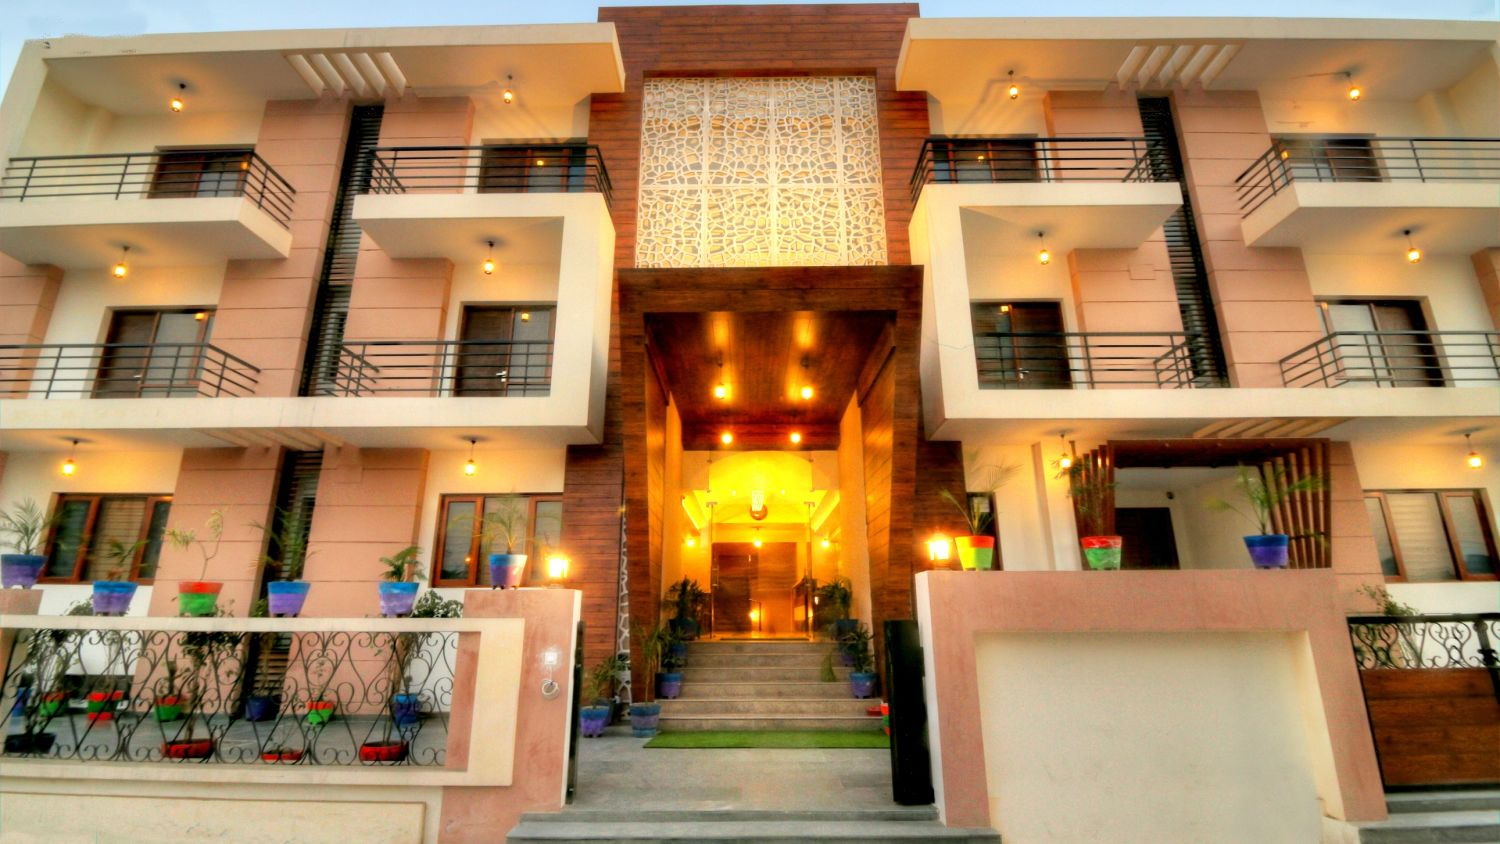 Facade of Our Hotel in Greater noida, Hotel Atithi Suites, Greater noida